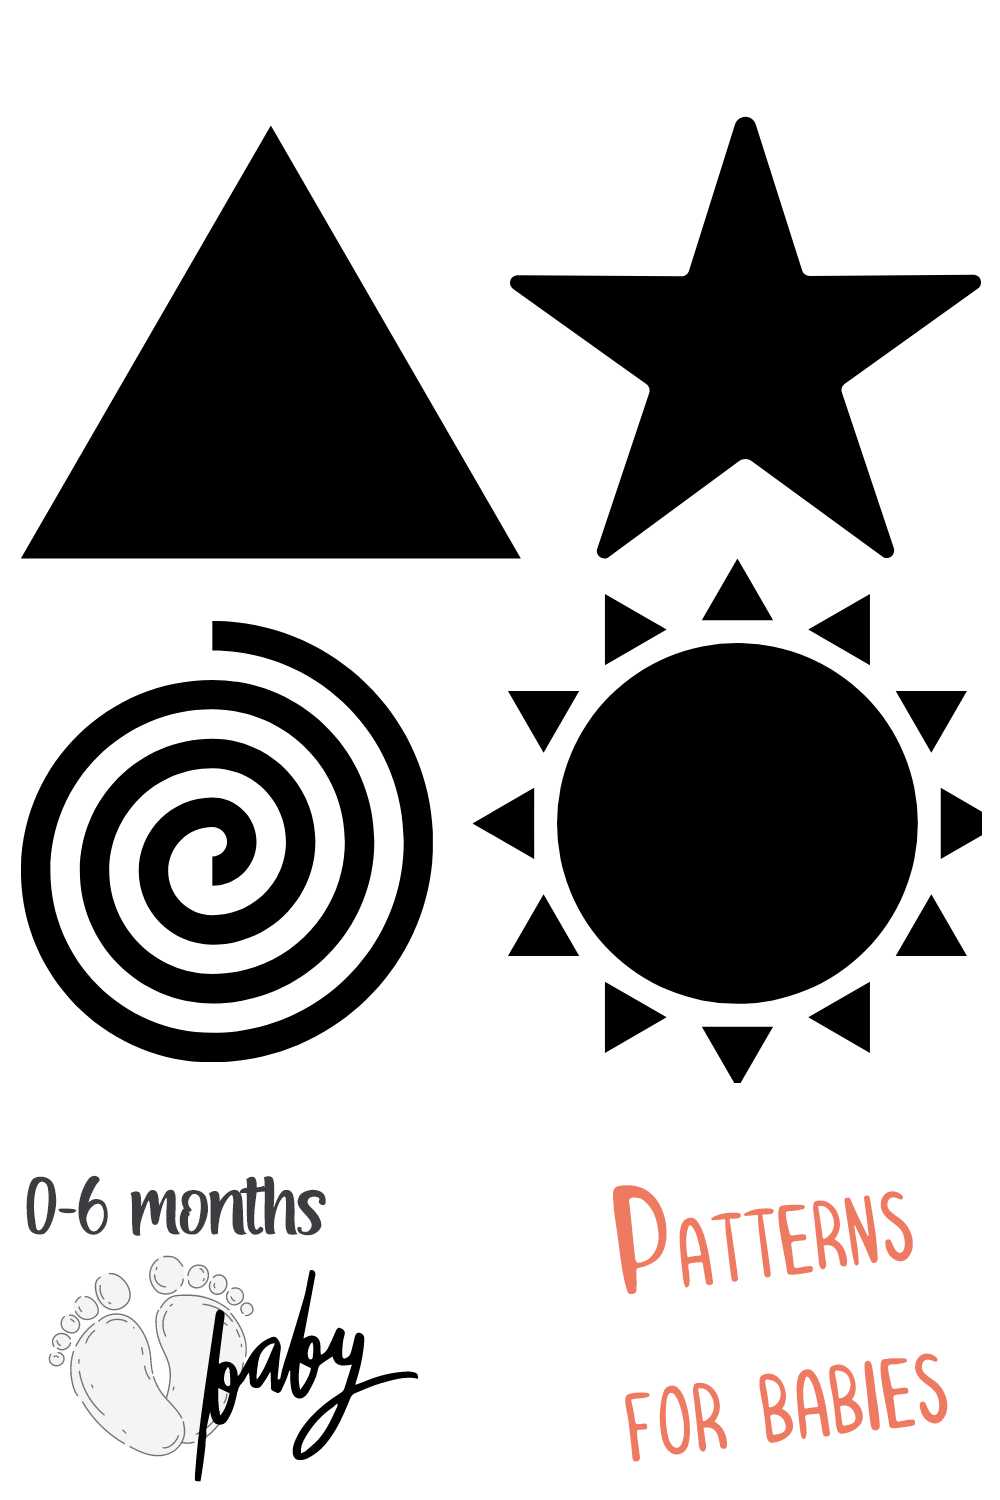 Patterns for babies. in 2020 High contrast images